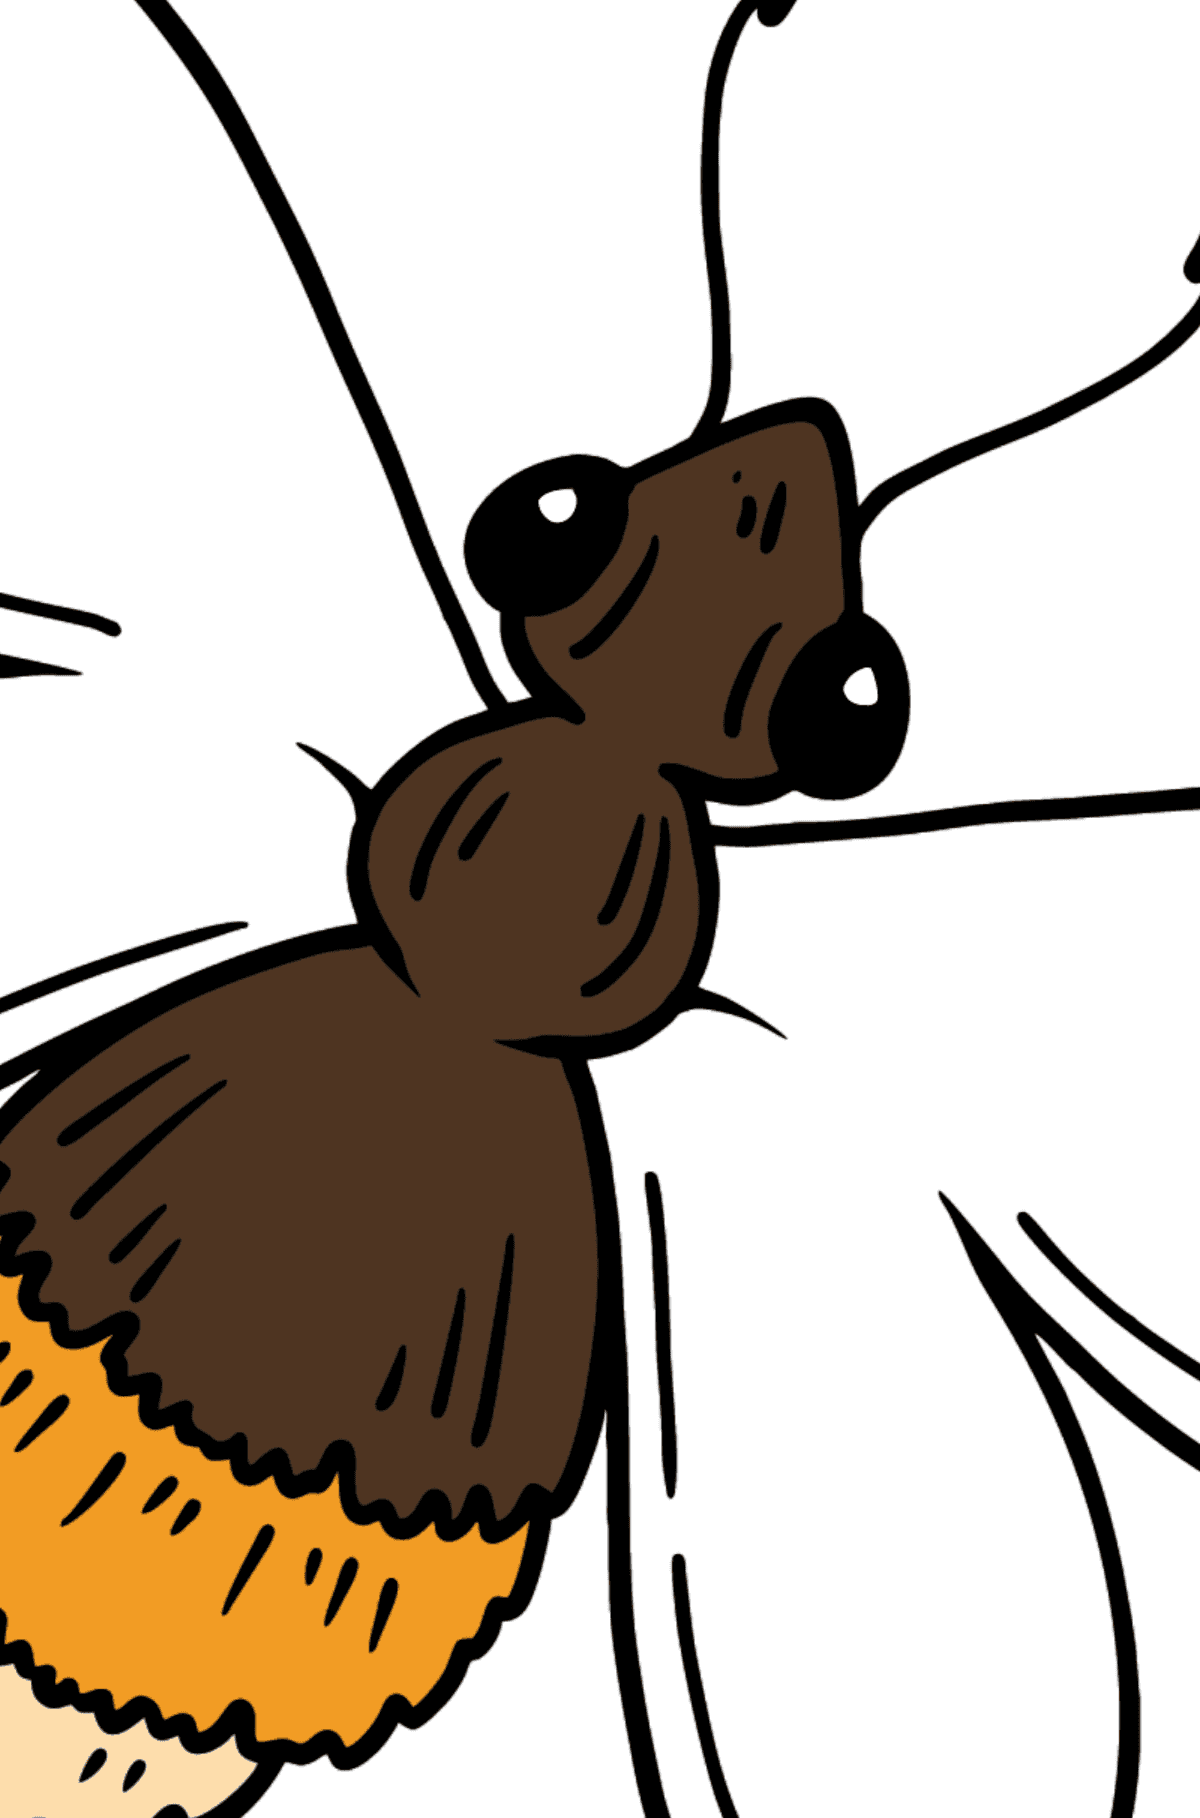 Bee coloring page - Coloring by Geometric Shapes for Kids